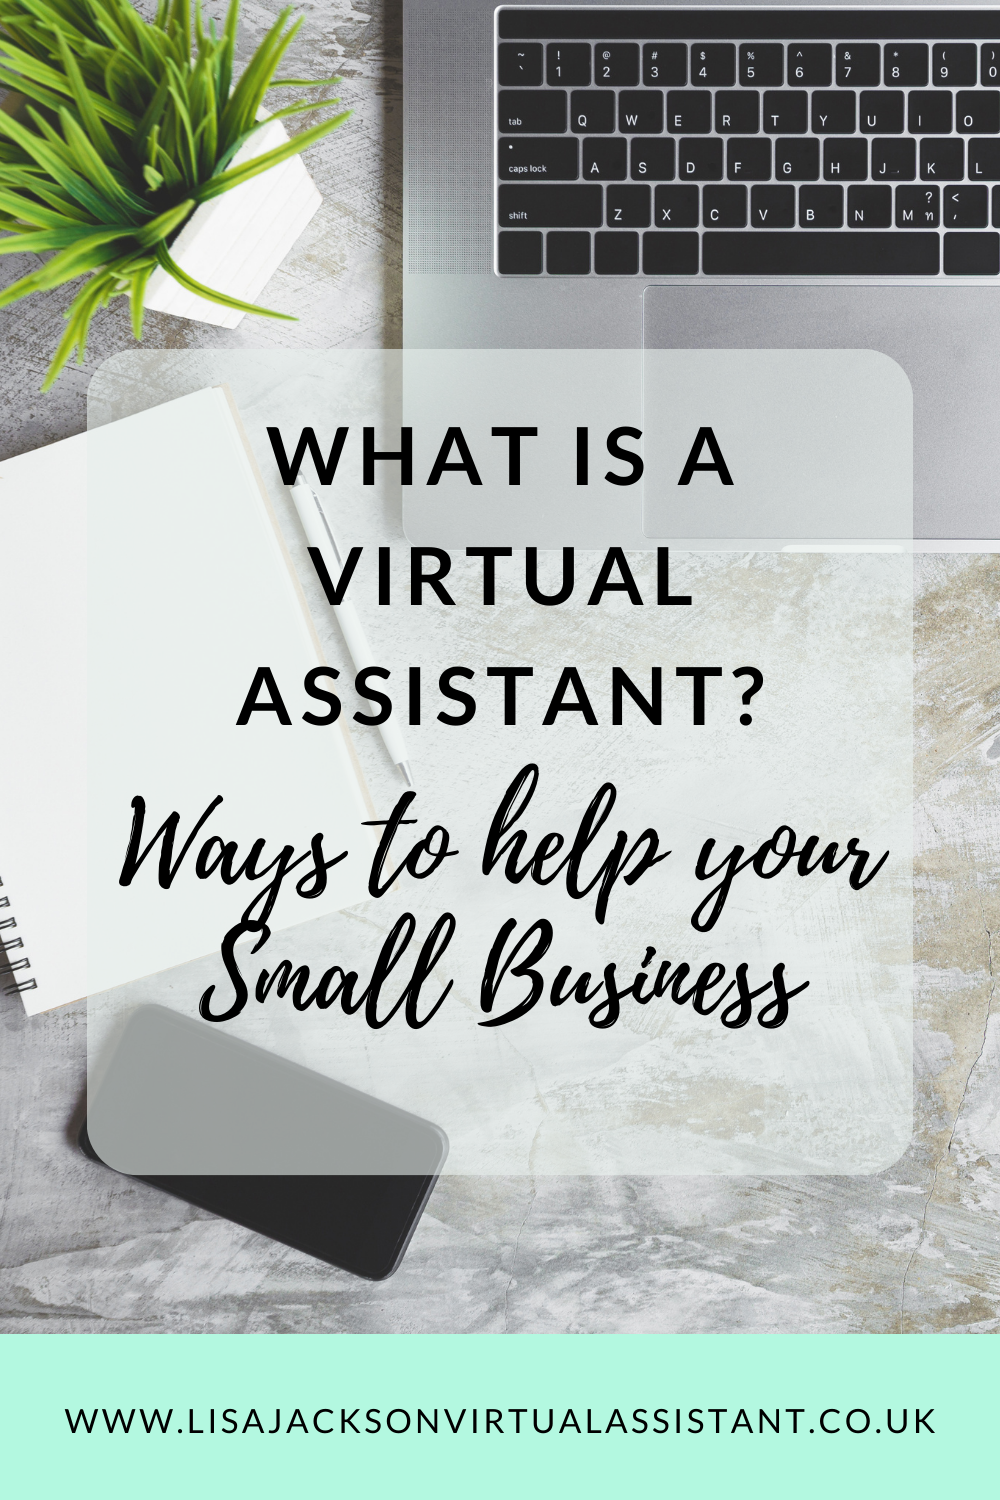 What is a Virtual Assistant? Ways a Virtual Assistant can help your small business